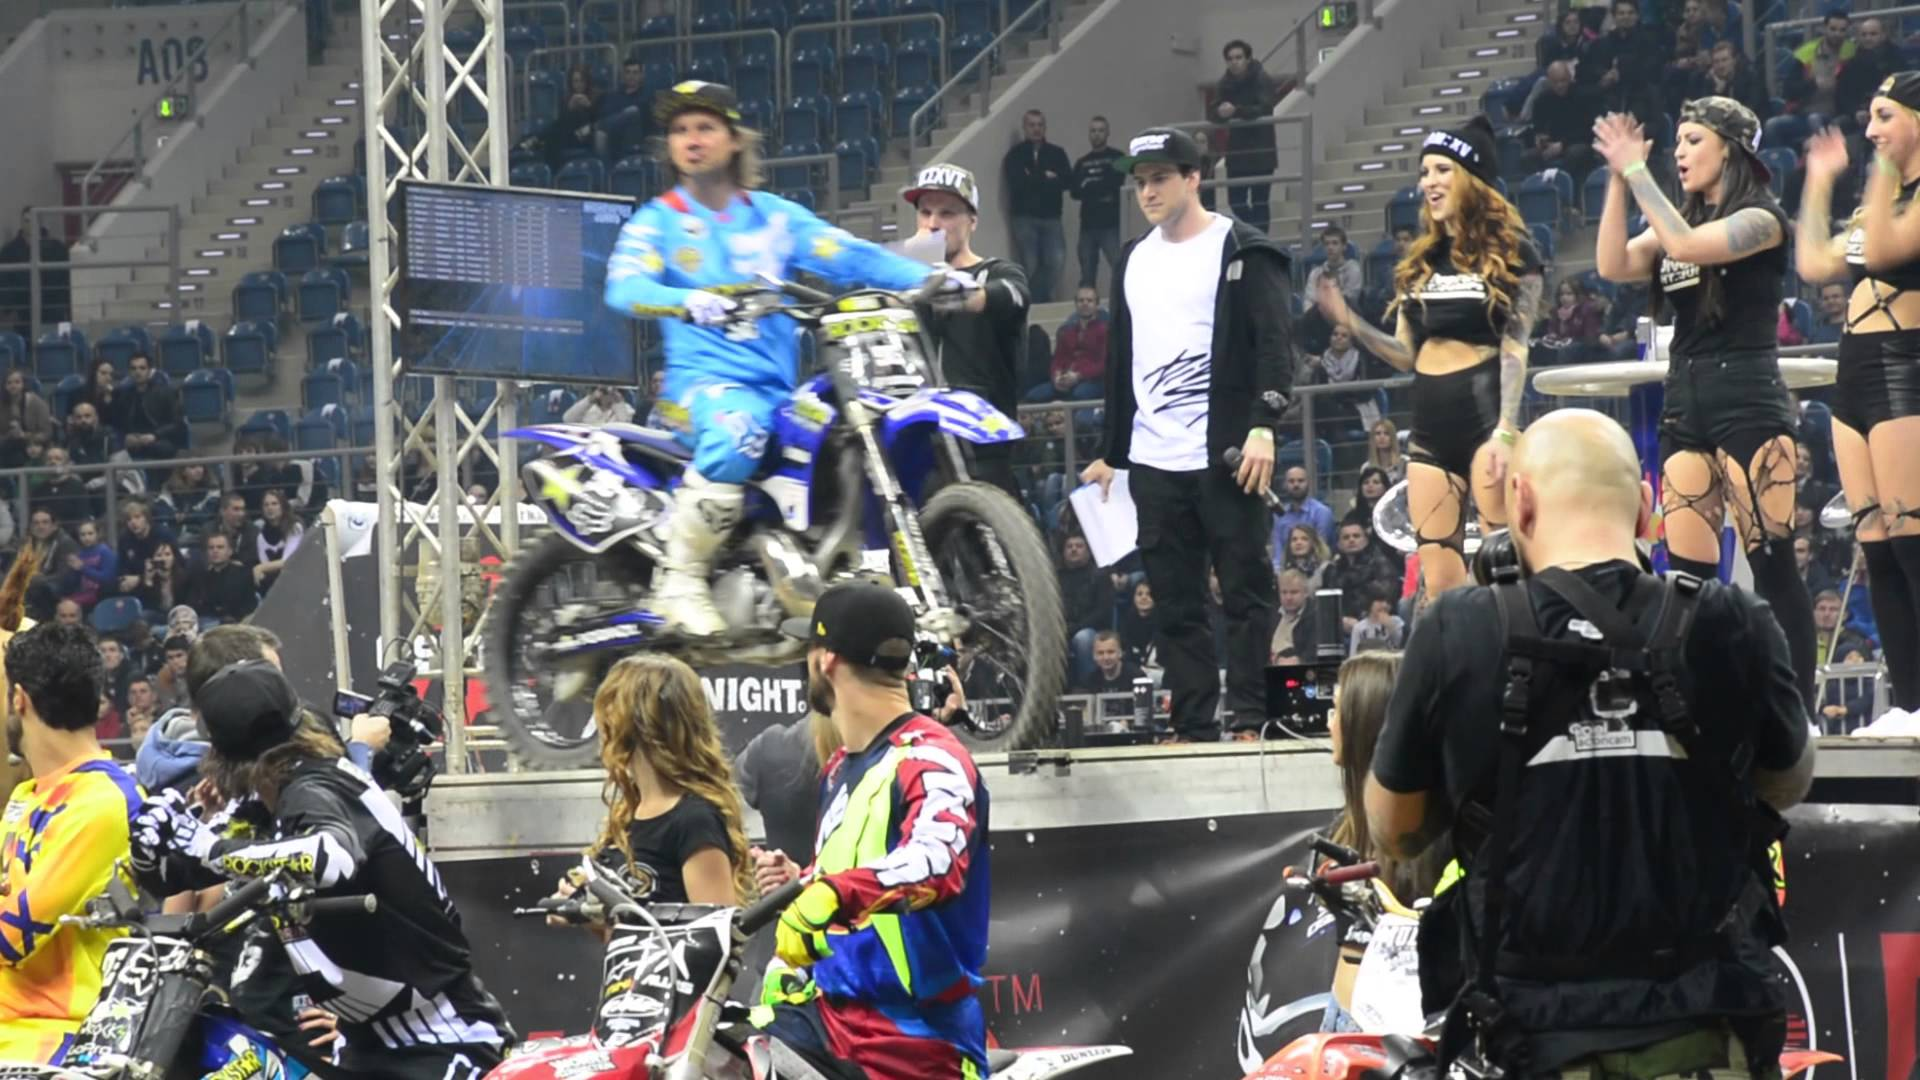 DIVERSE NIGHT OF THE JUMPS TAURON Arena Kraków 2015 by MXmagazine